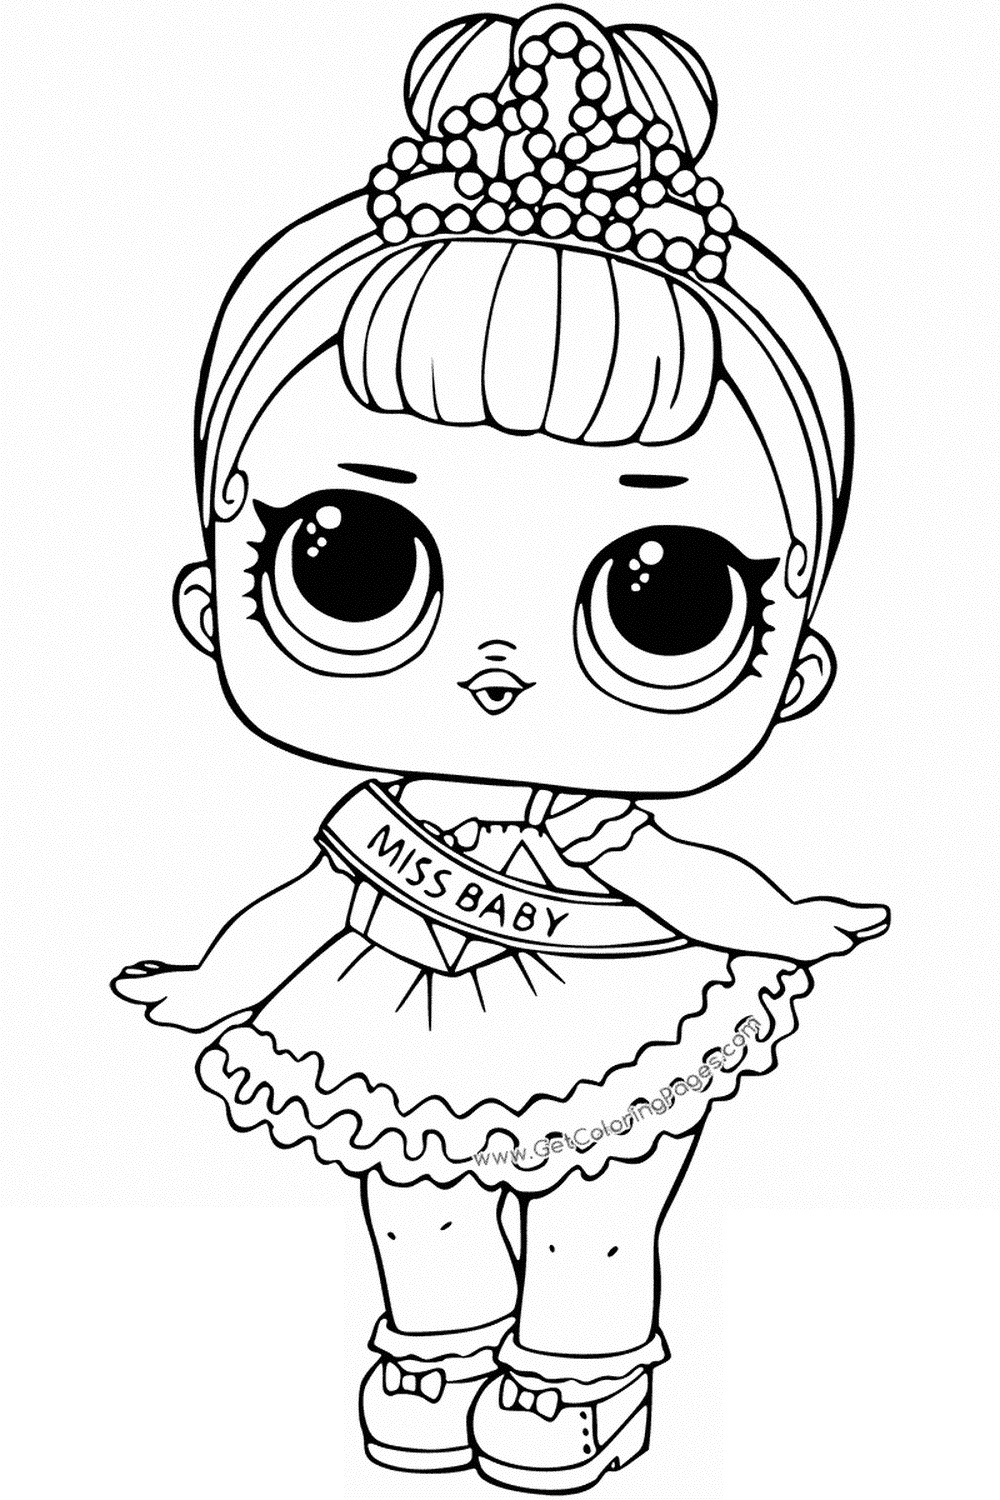 Coloring pages of lol surprise dolls 80 pieces of black and white pictures